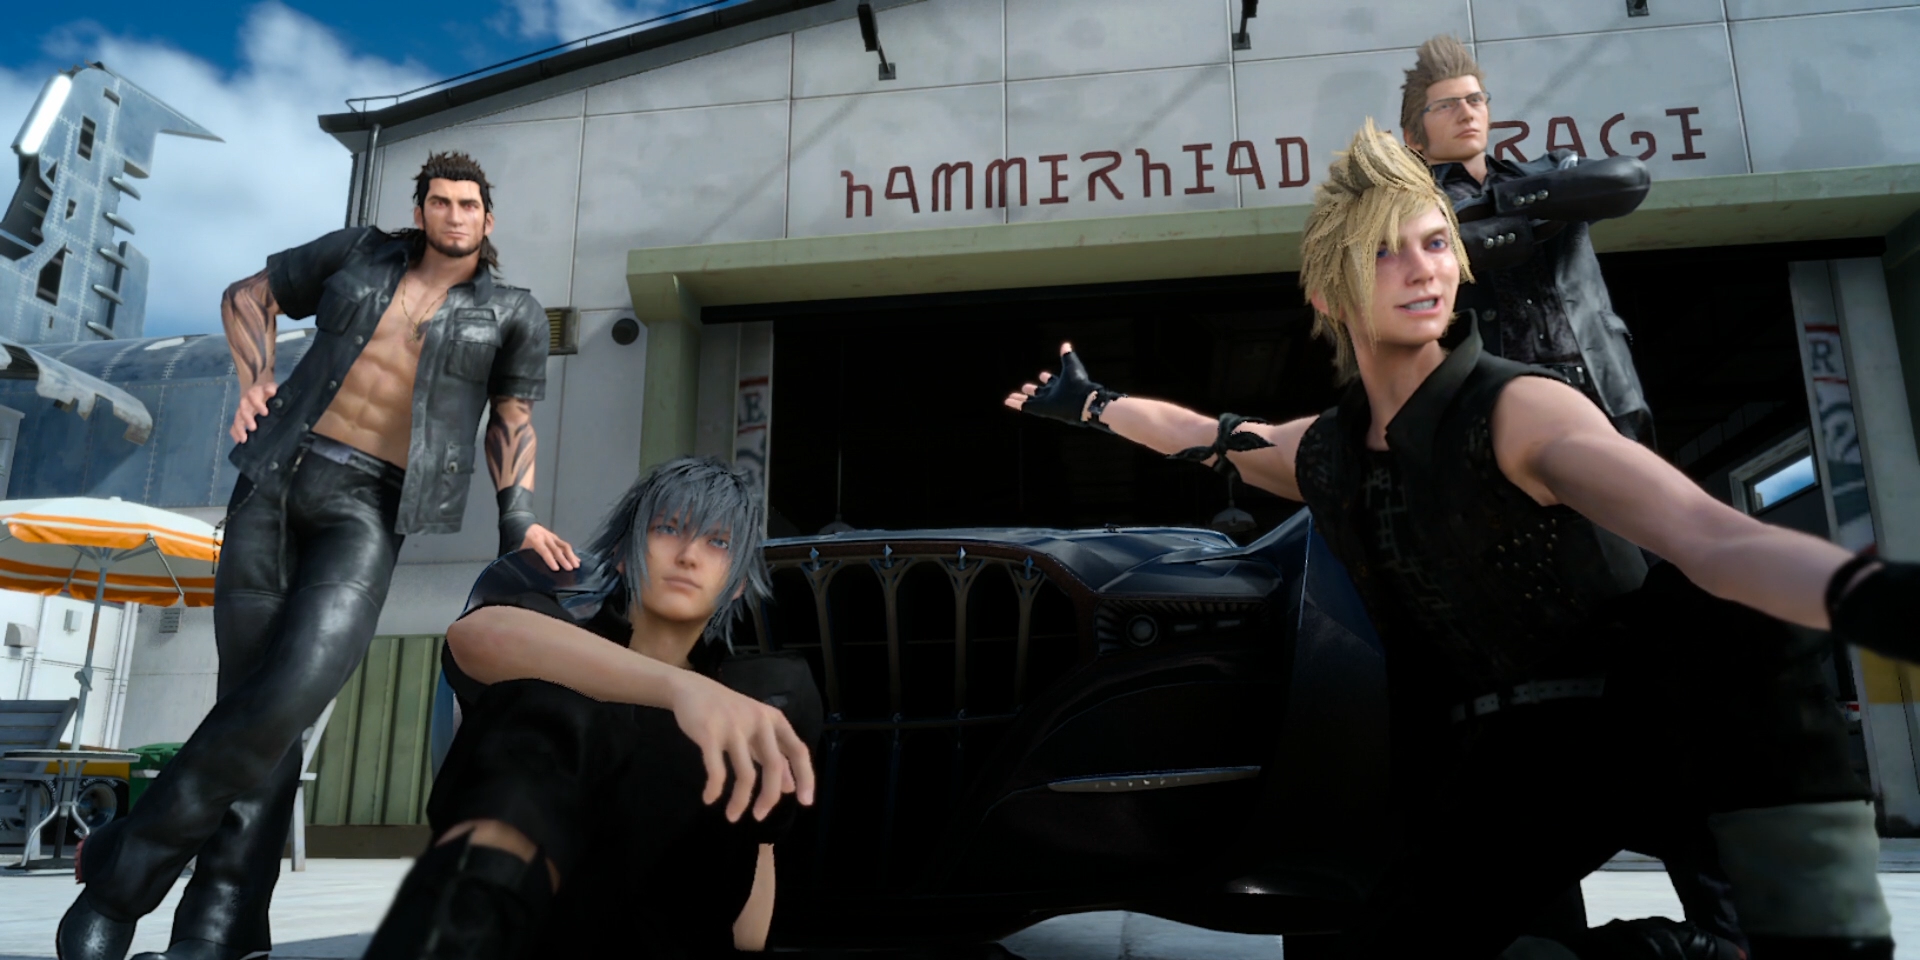 Look at Prompto. So happy.